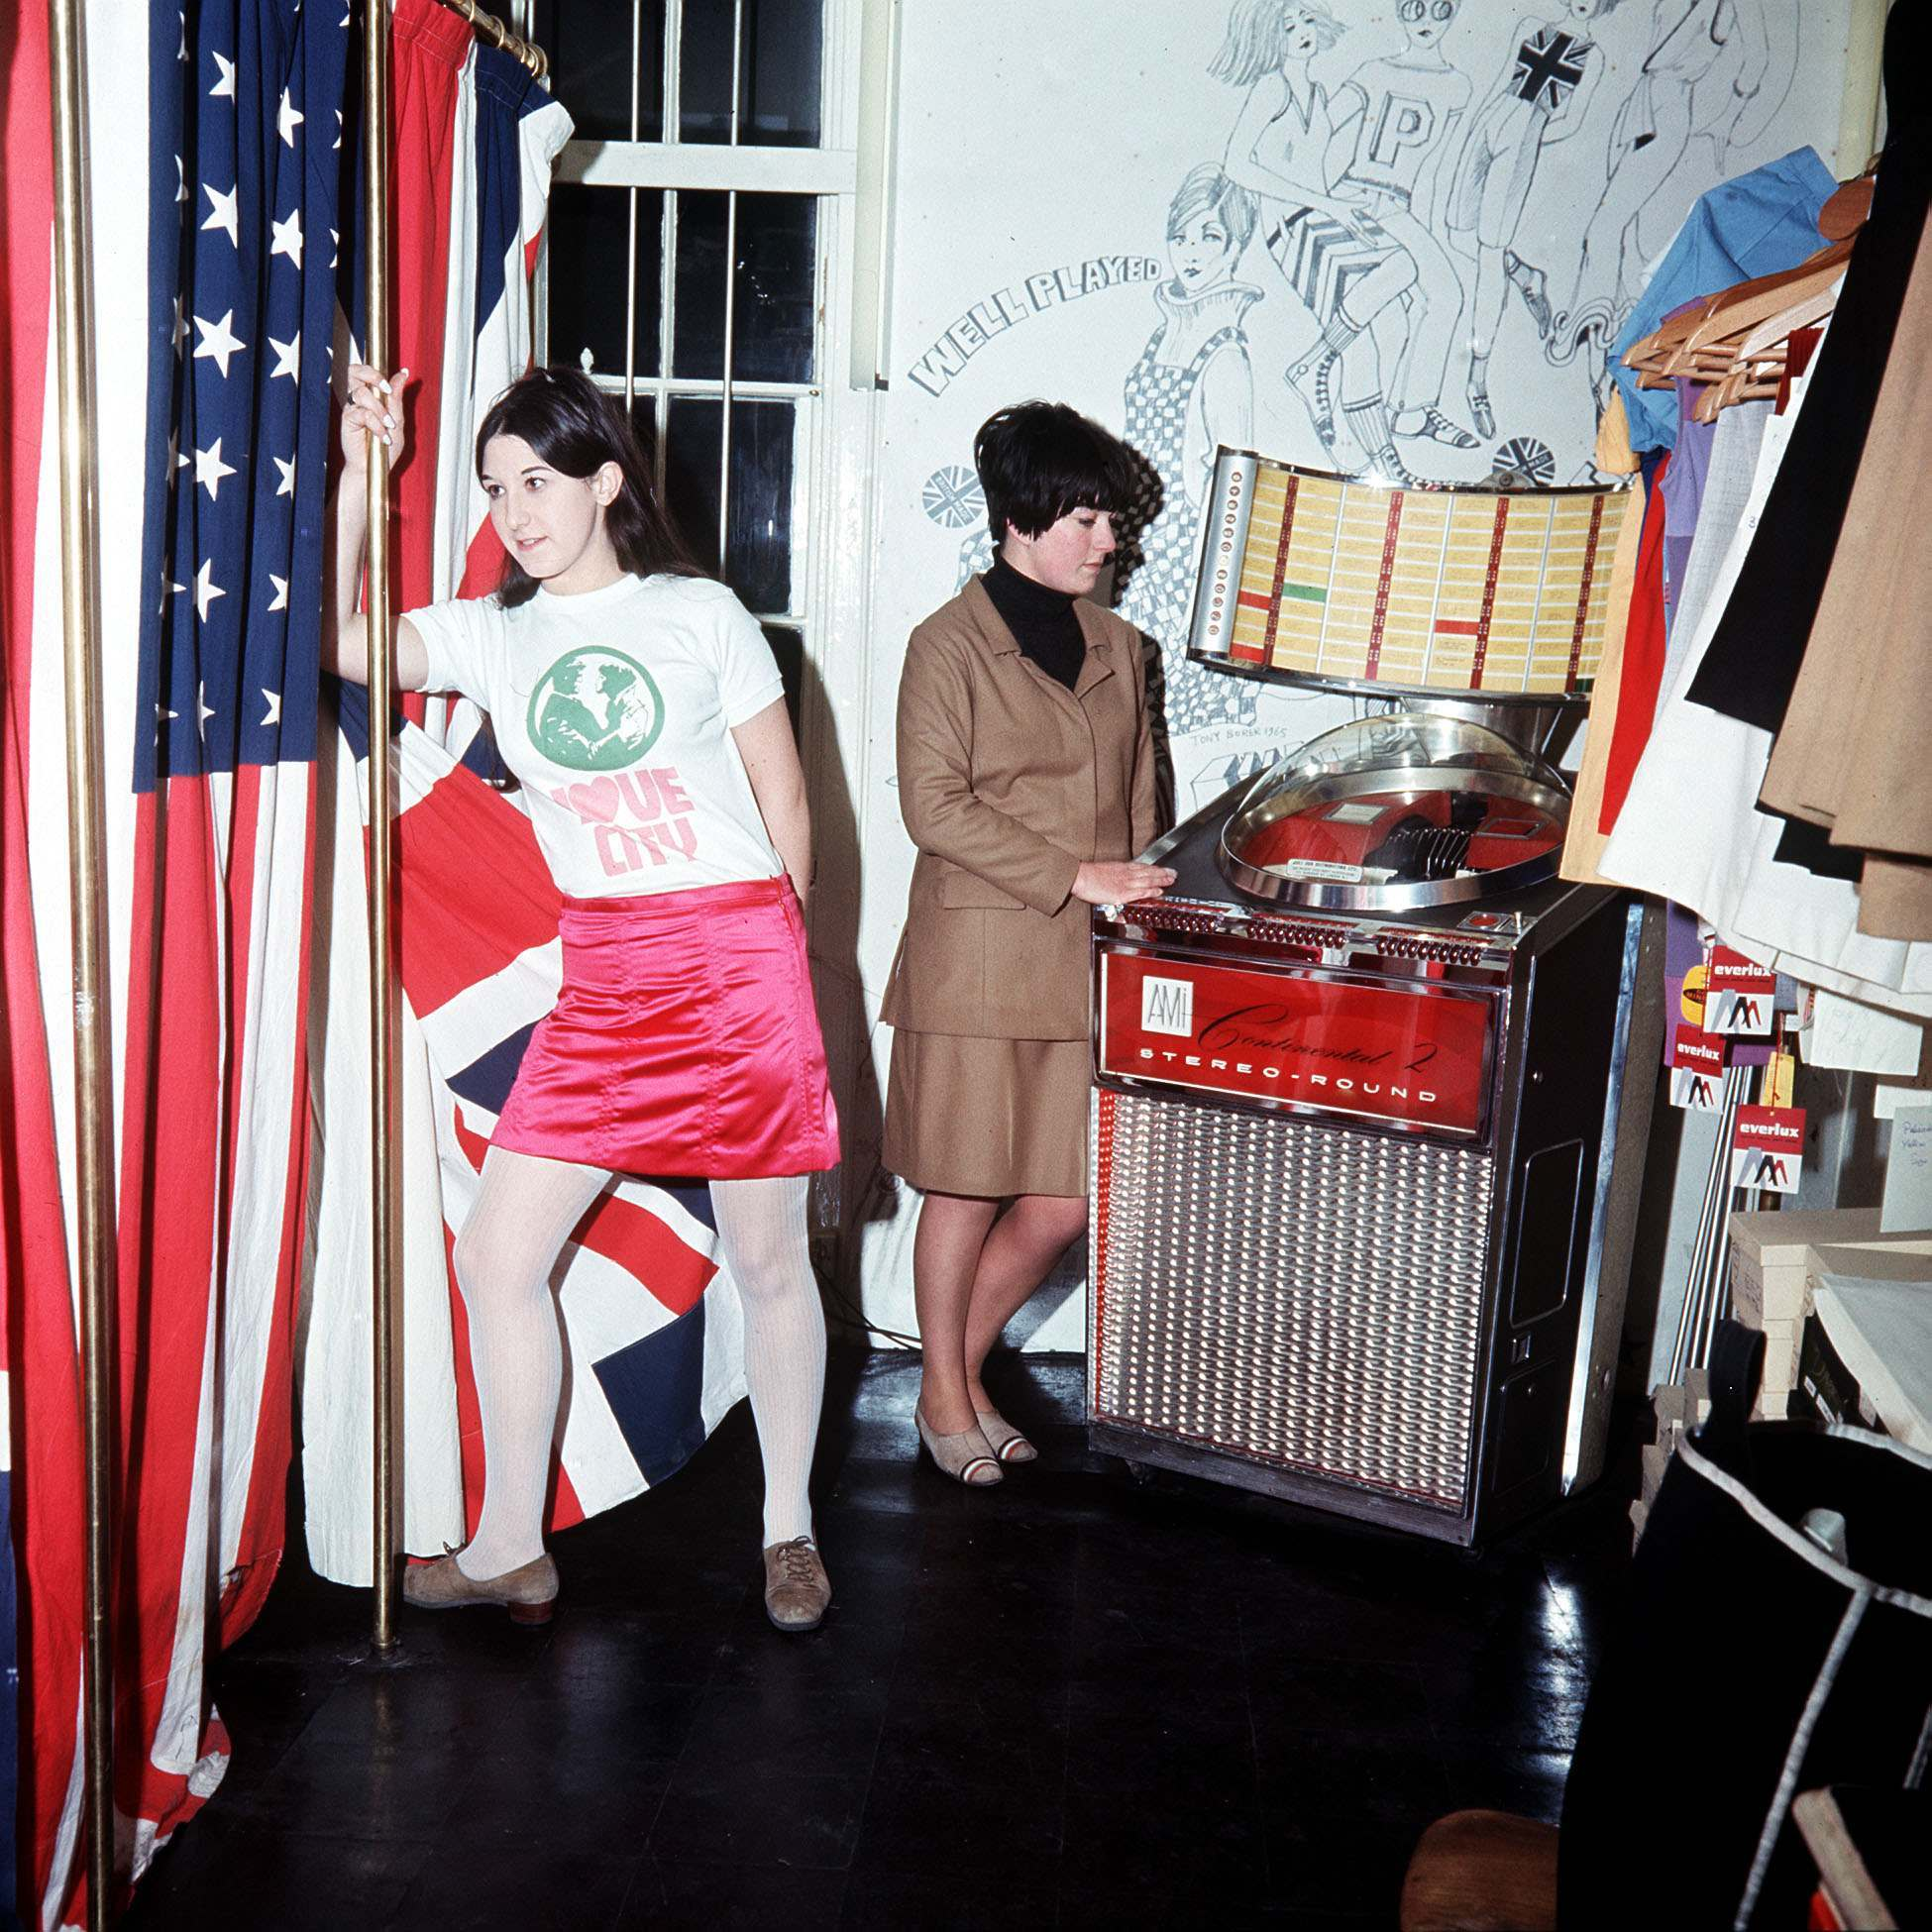 SWINGING LONDON 1966: In Pauline Fordham's boutique in Ganton Street, near Carnaby Street. Customer Jackie Binder in a 'with it' blouse and skirt stands beside a dressing room decorated with the Union Jack and the Stars and Stripes. In the background, Jacqueline Ball plays the juke box.